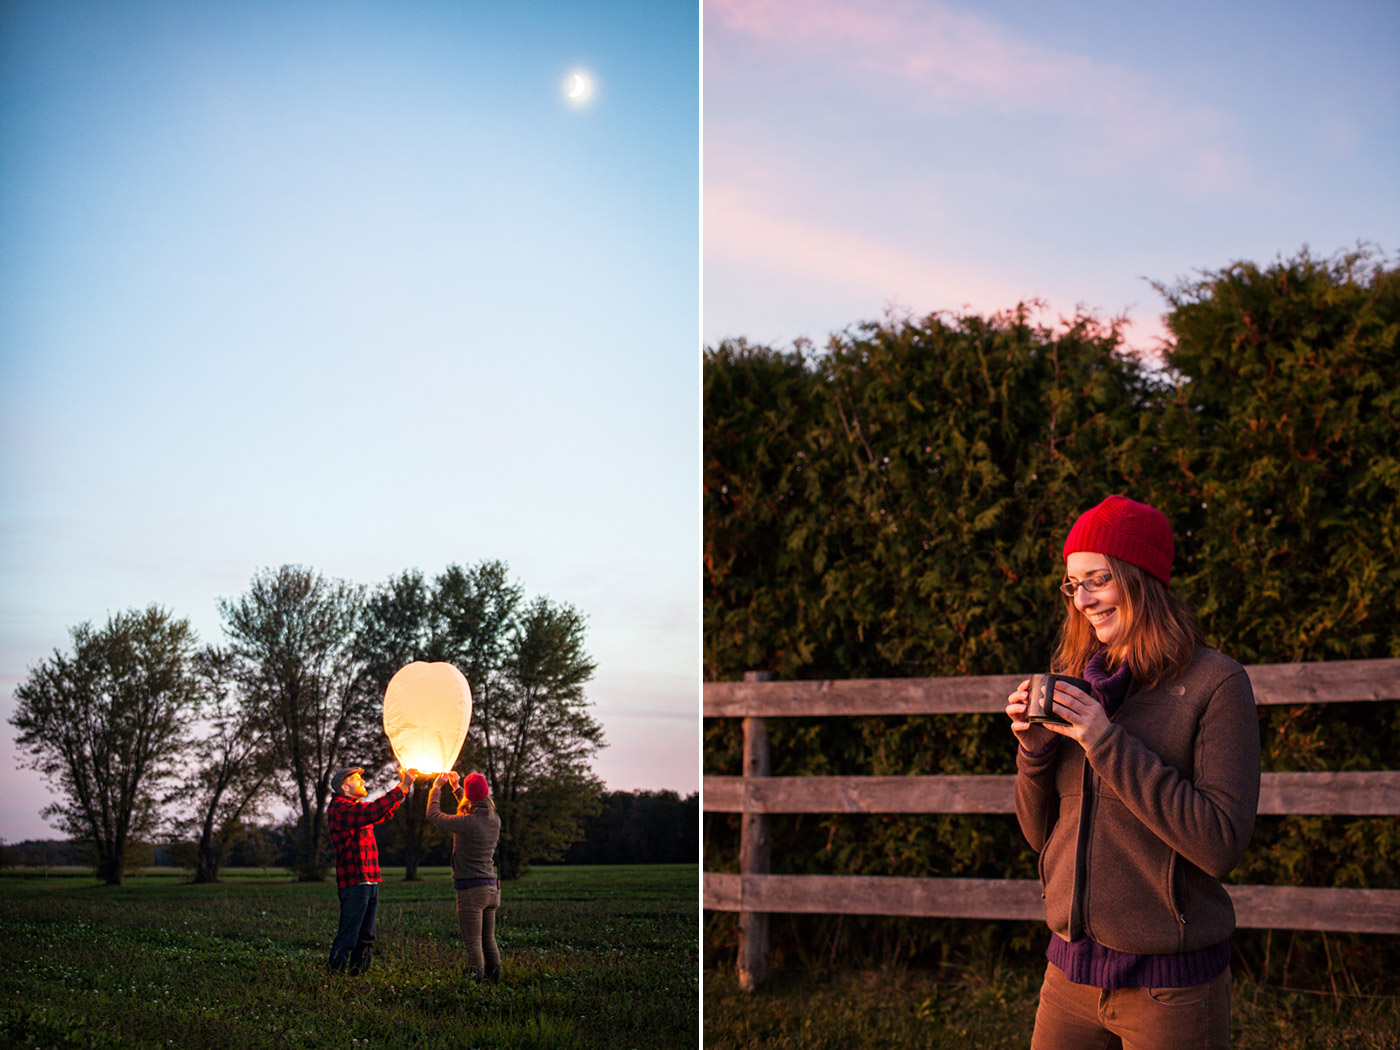 Paper lantern release and mugs of warm cider at dusk in the fall, by Vermont Photographer Monica Donovan.